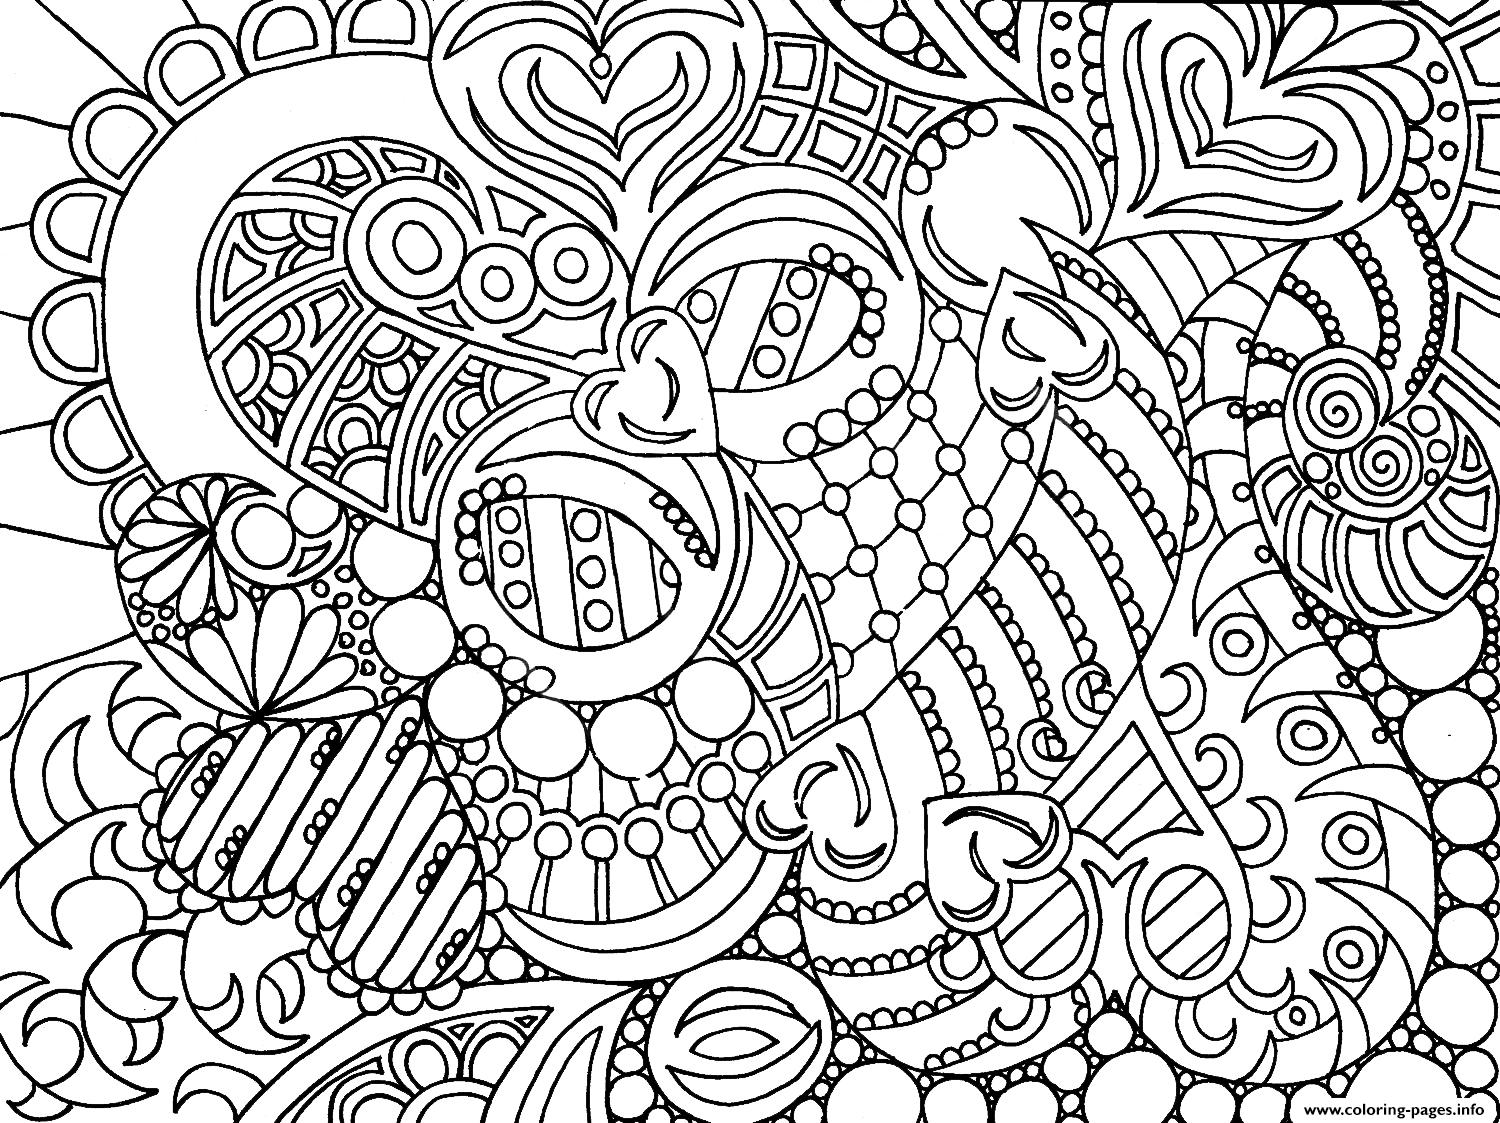 awesome coloring page - very cool colouring for adult coloring pages printable